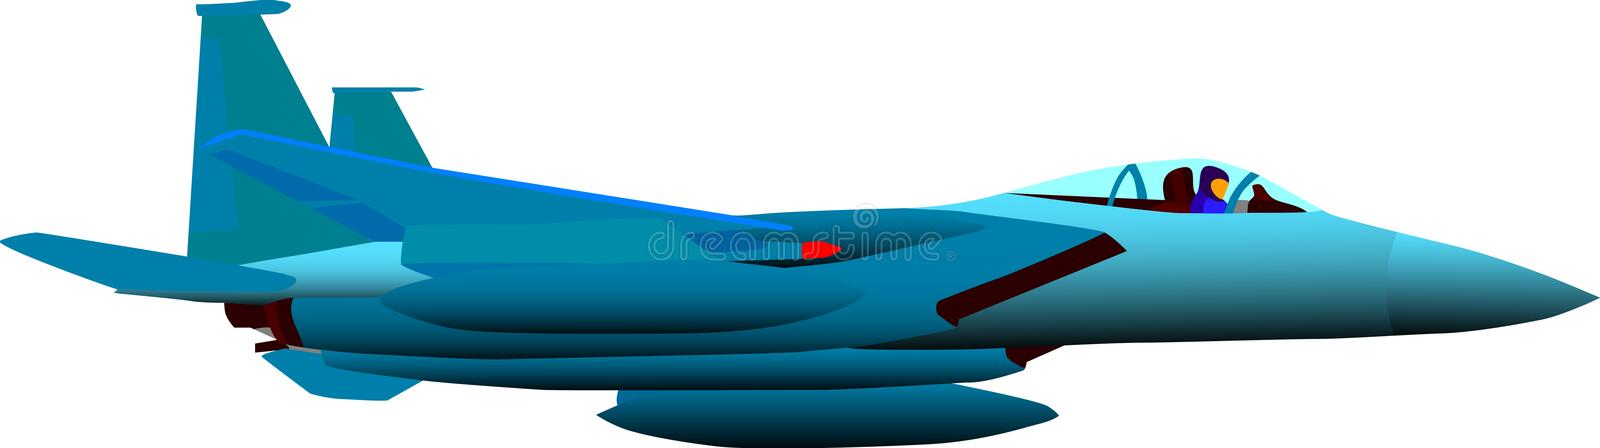 Download Airplane stock illustration. Image of plane, airport, navy - 7063133